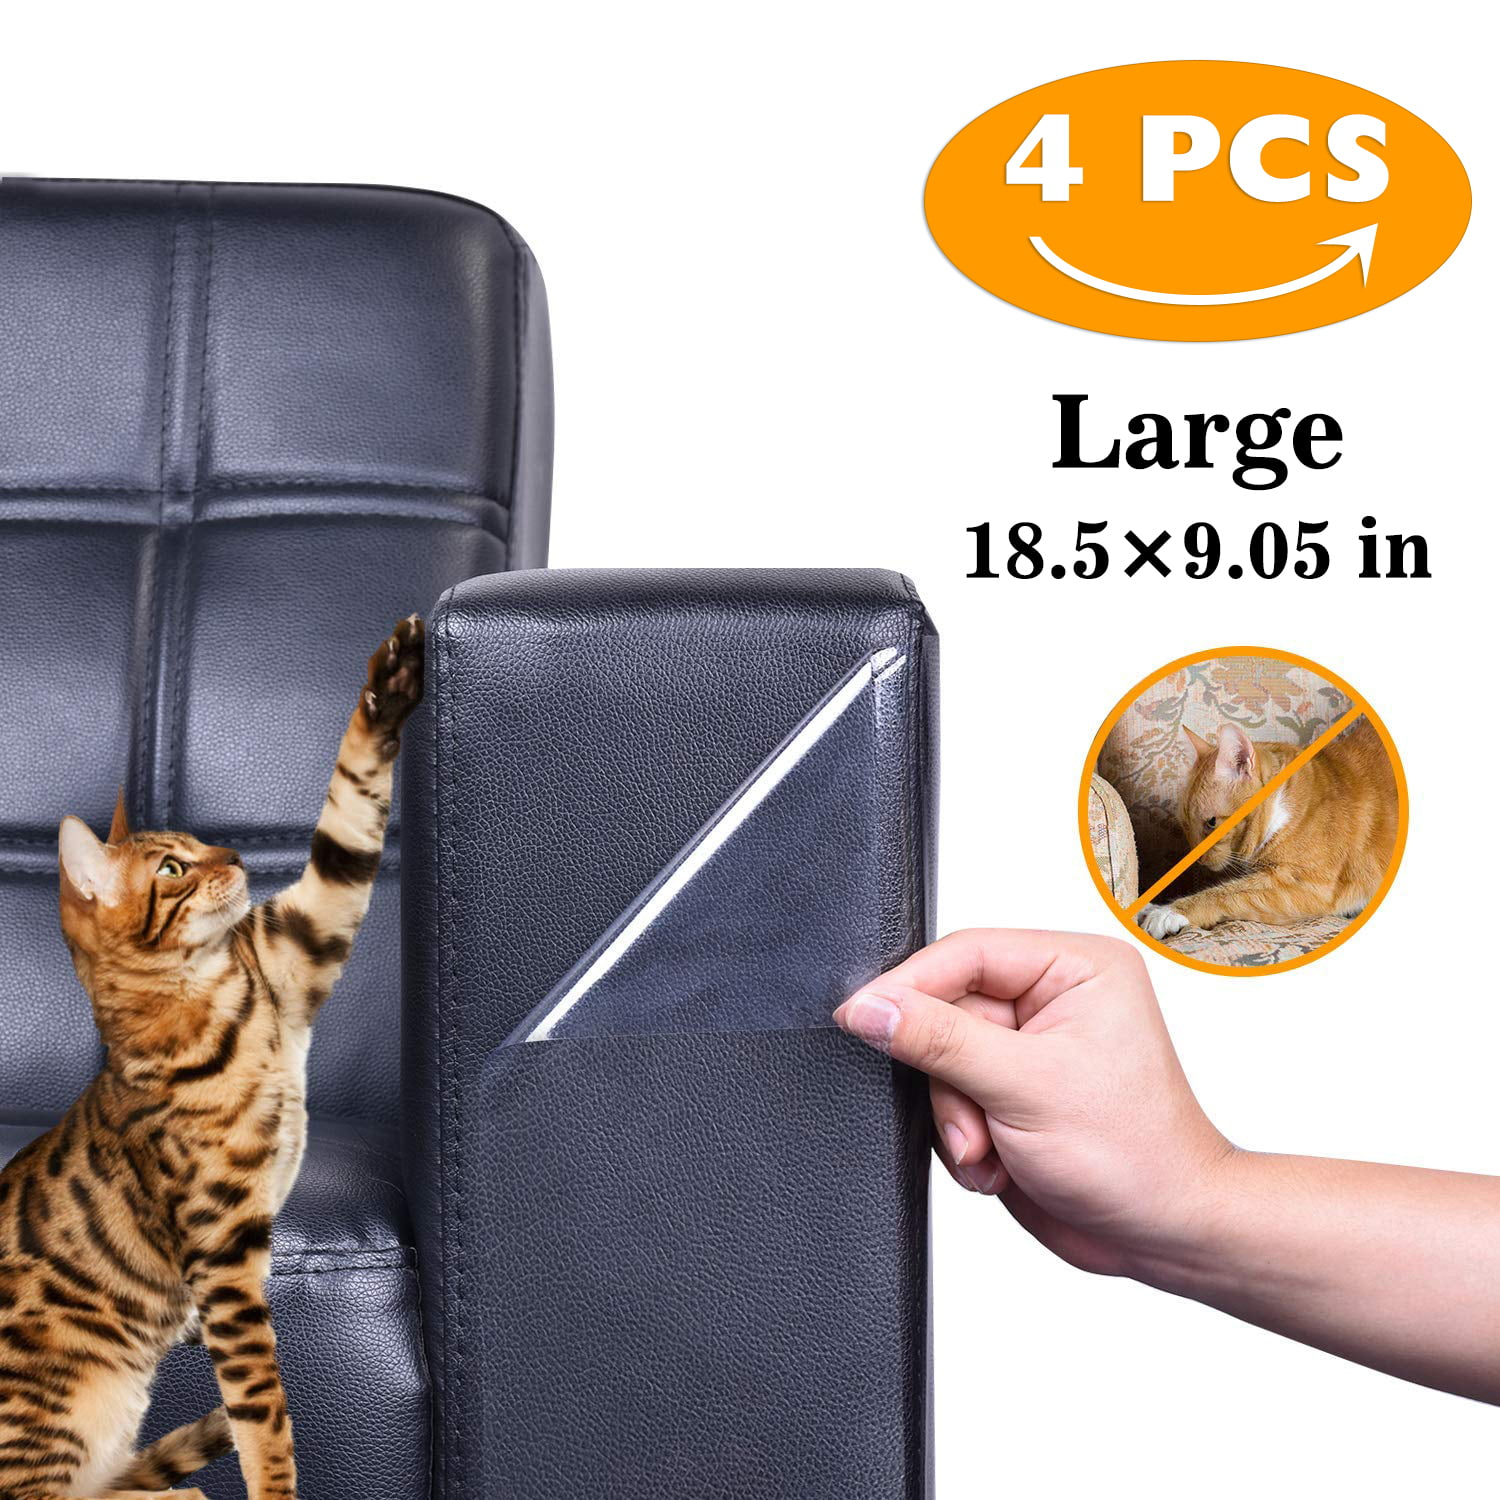 4pcs Large Couch Defender For Cats Stop Pets From